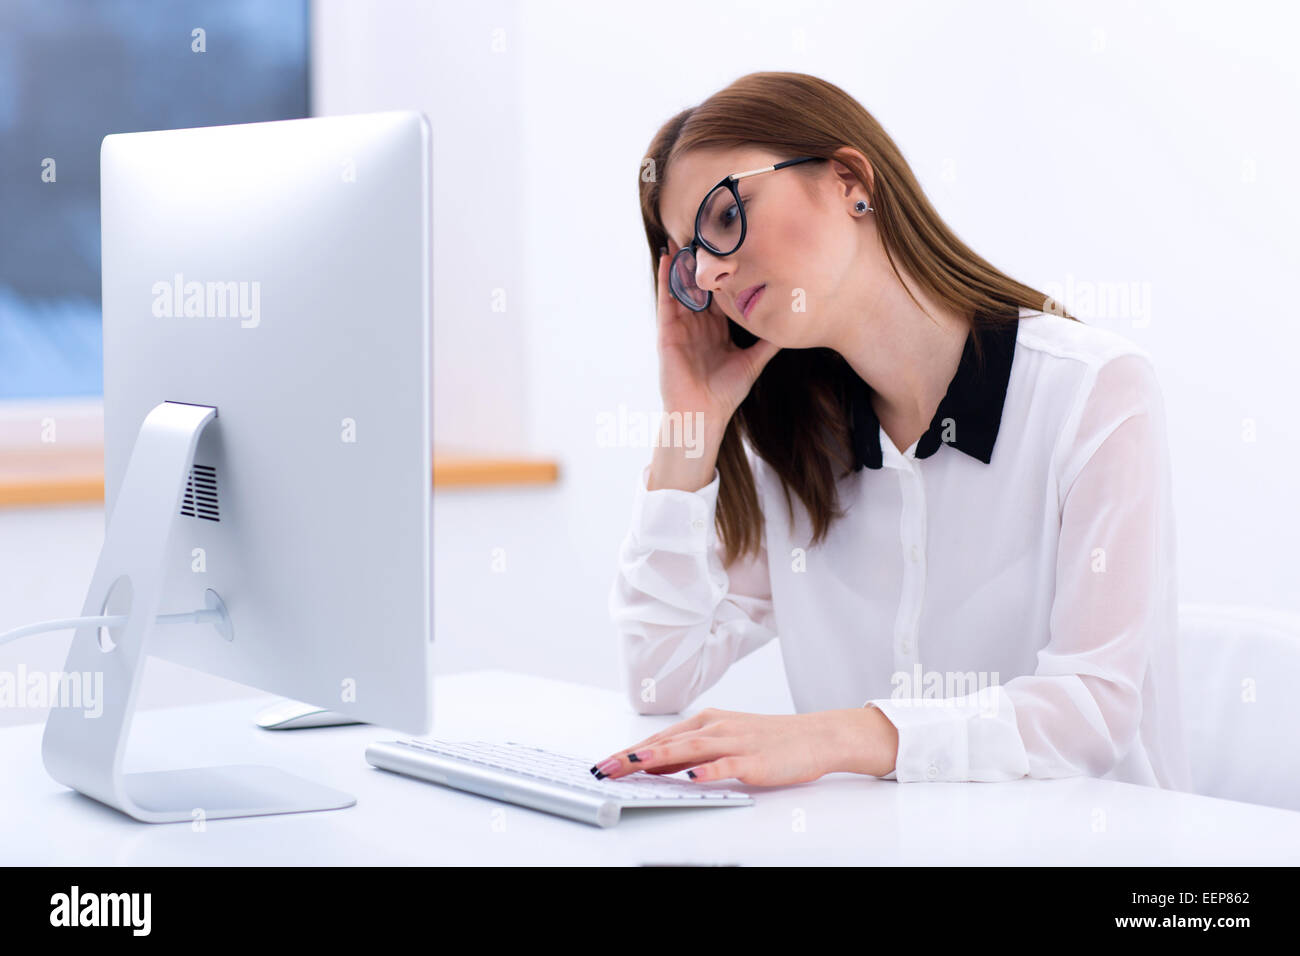 Fatigué businesswoman working in office Photo Stock